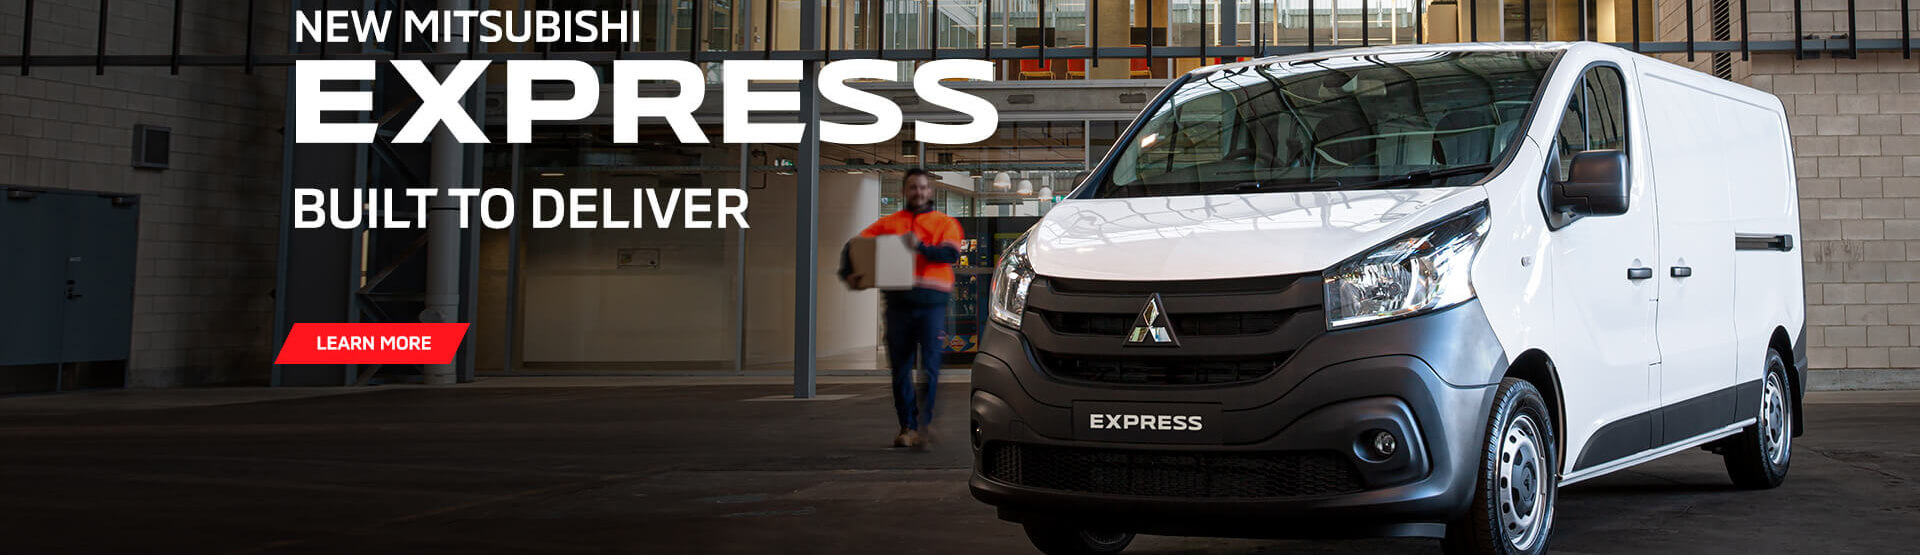 New Mitsubishi Express Van is built to deliver. Book a test drive today.